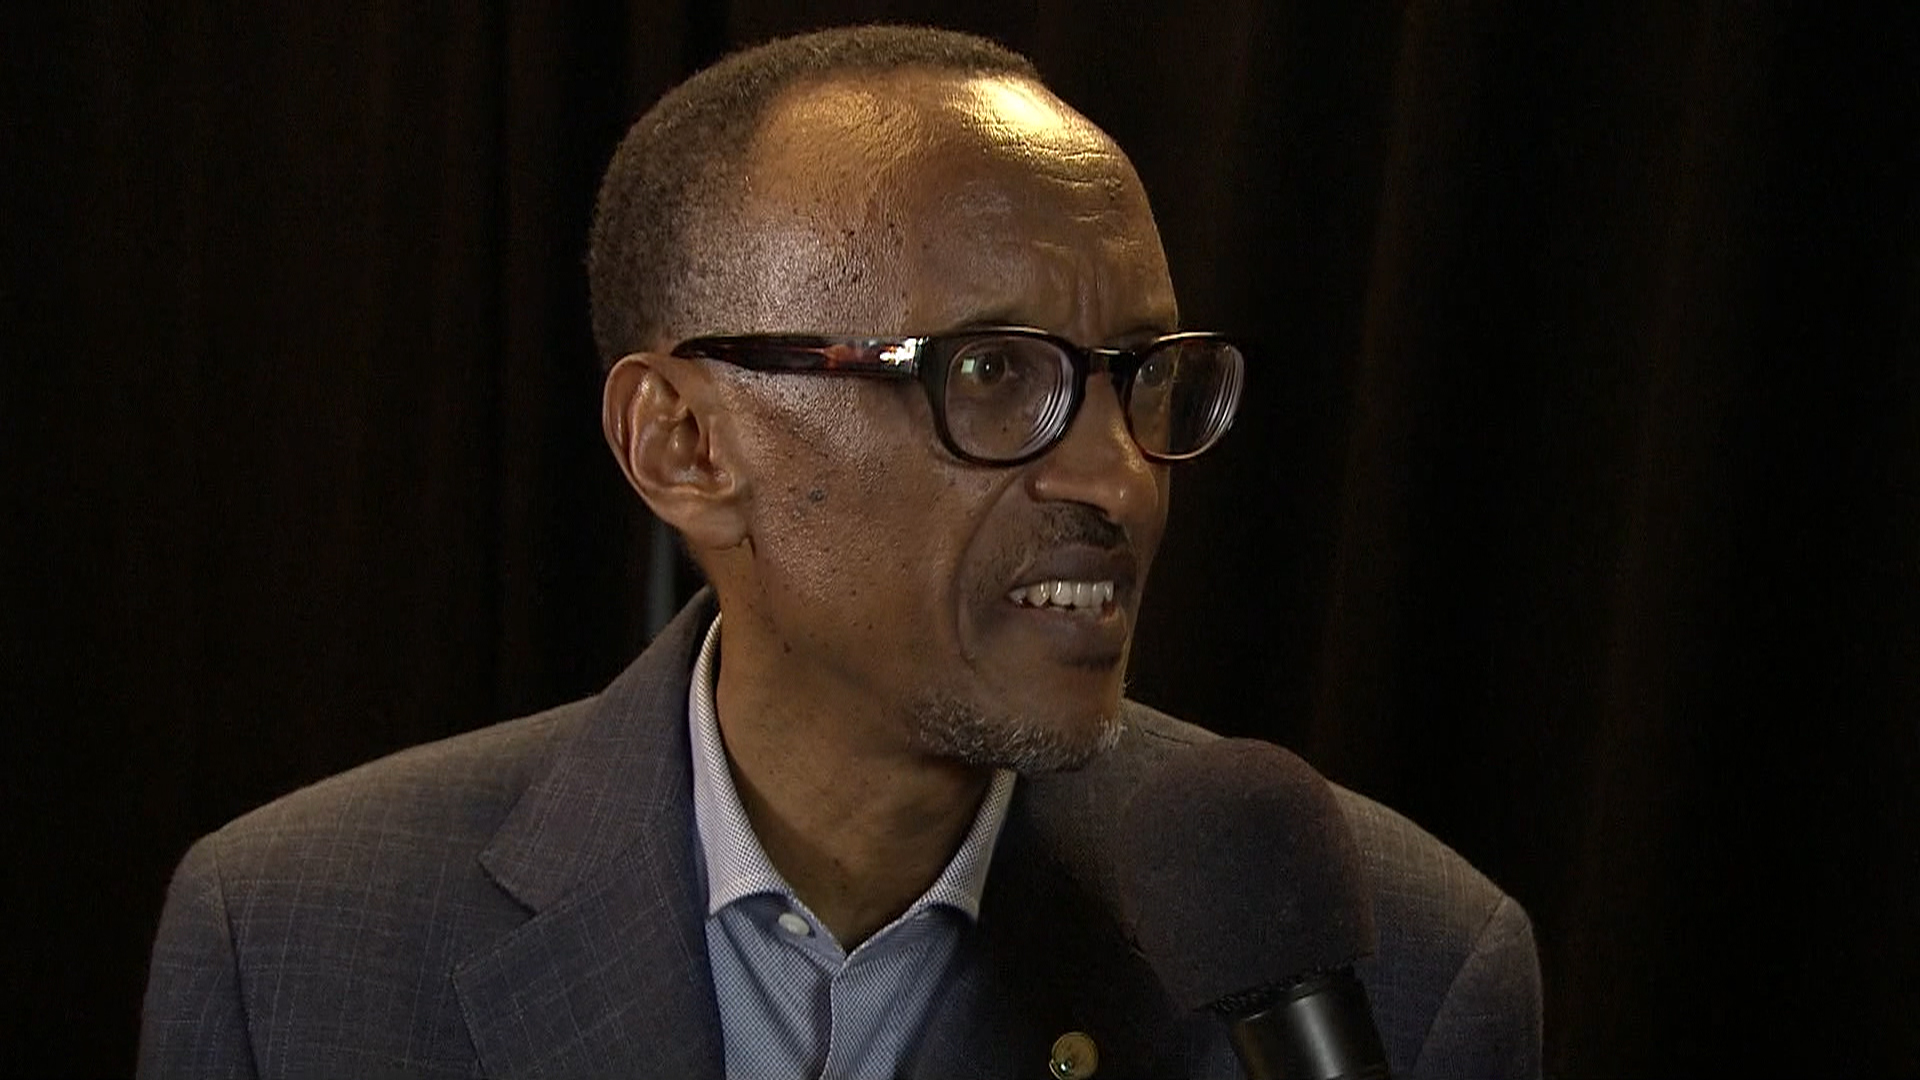 Kagame answers questions about lake victims